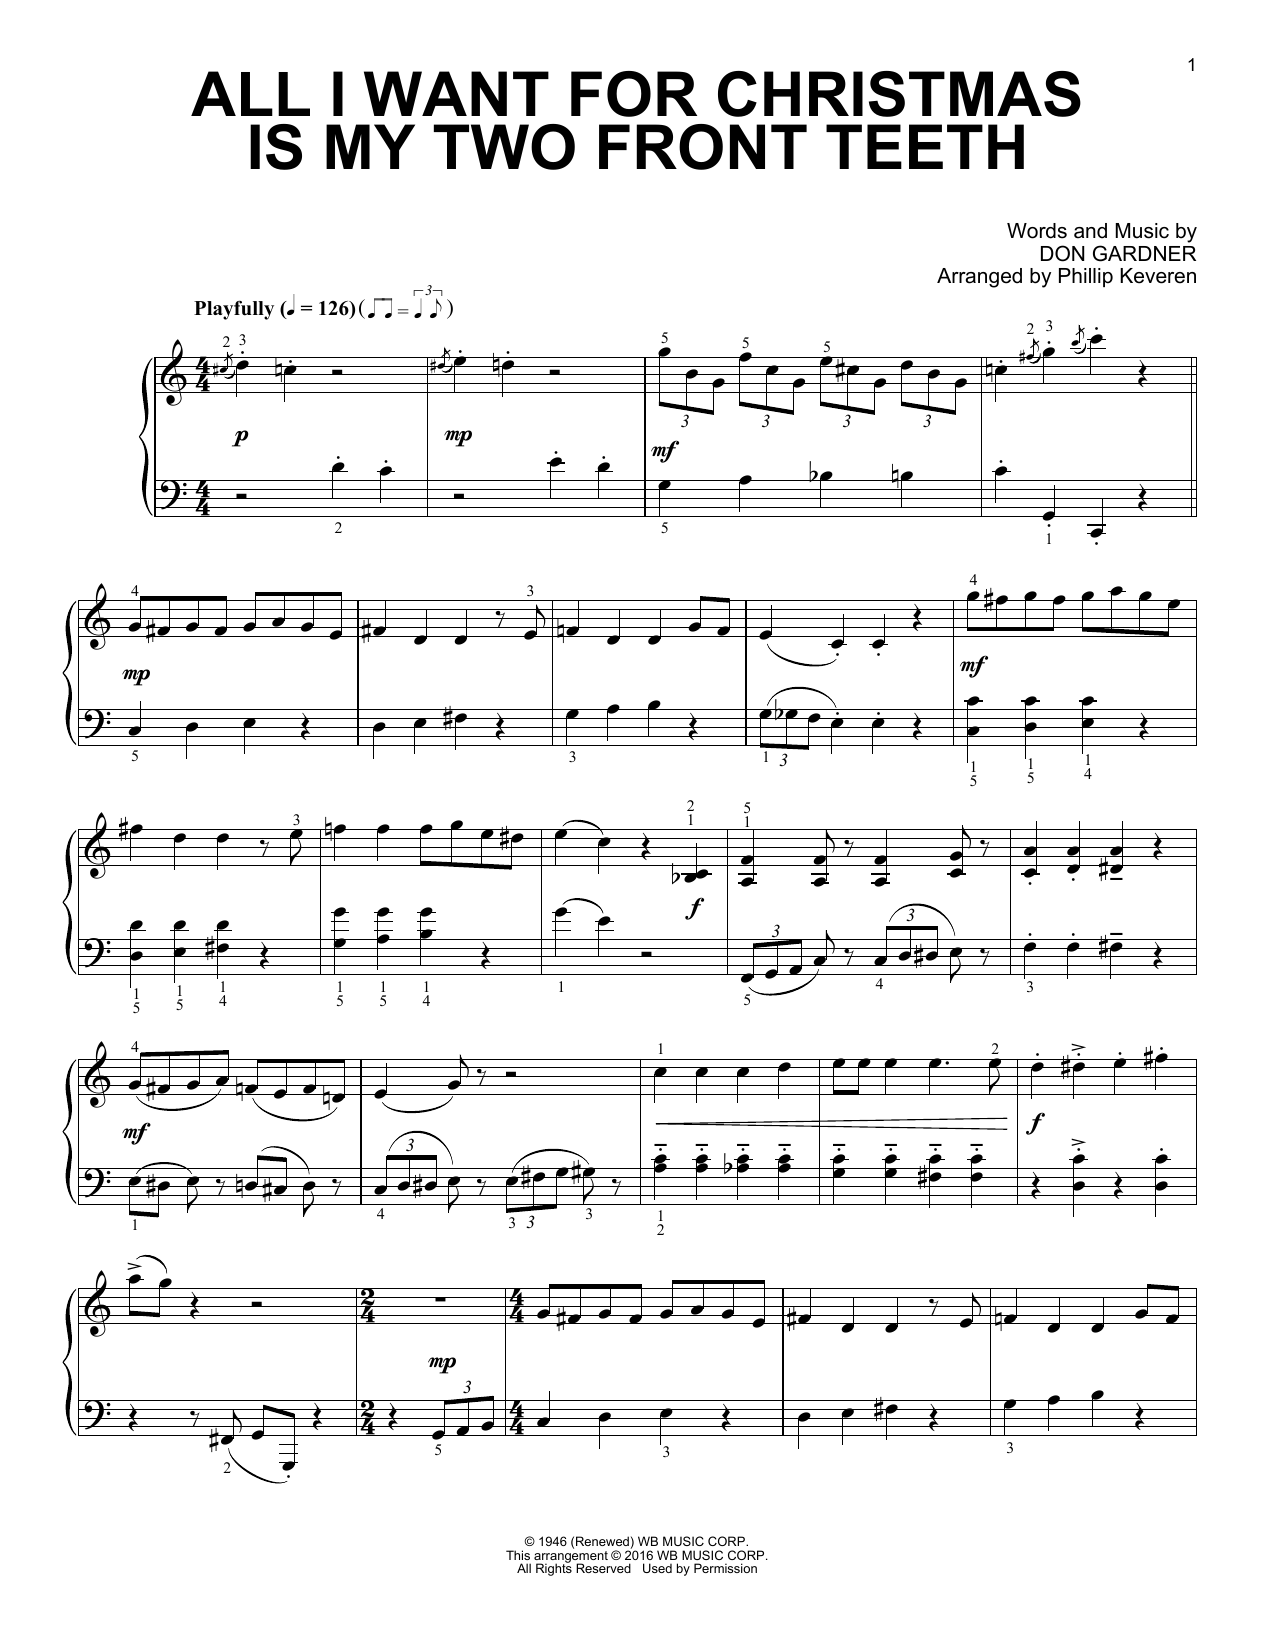 Download Phillip Keveren 'All I Want For Christmas Is My Two Front Teeth' Digital Sheet Music Notes & Chords and start playing in minutes